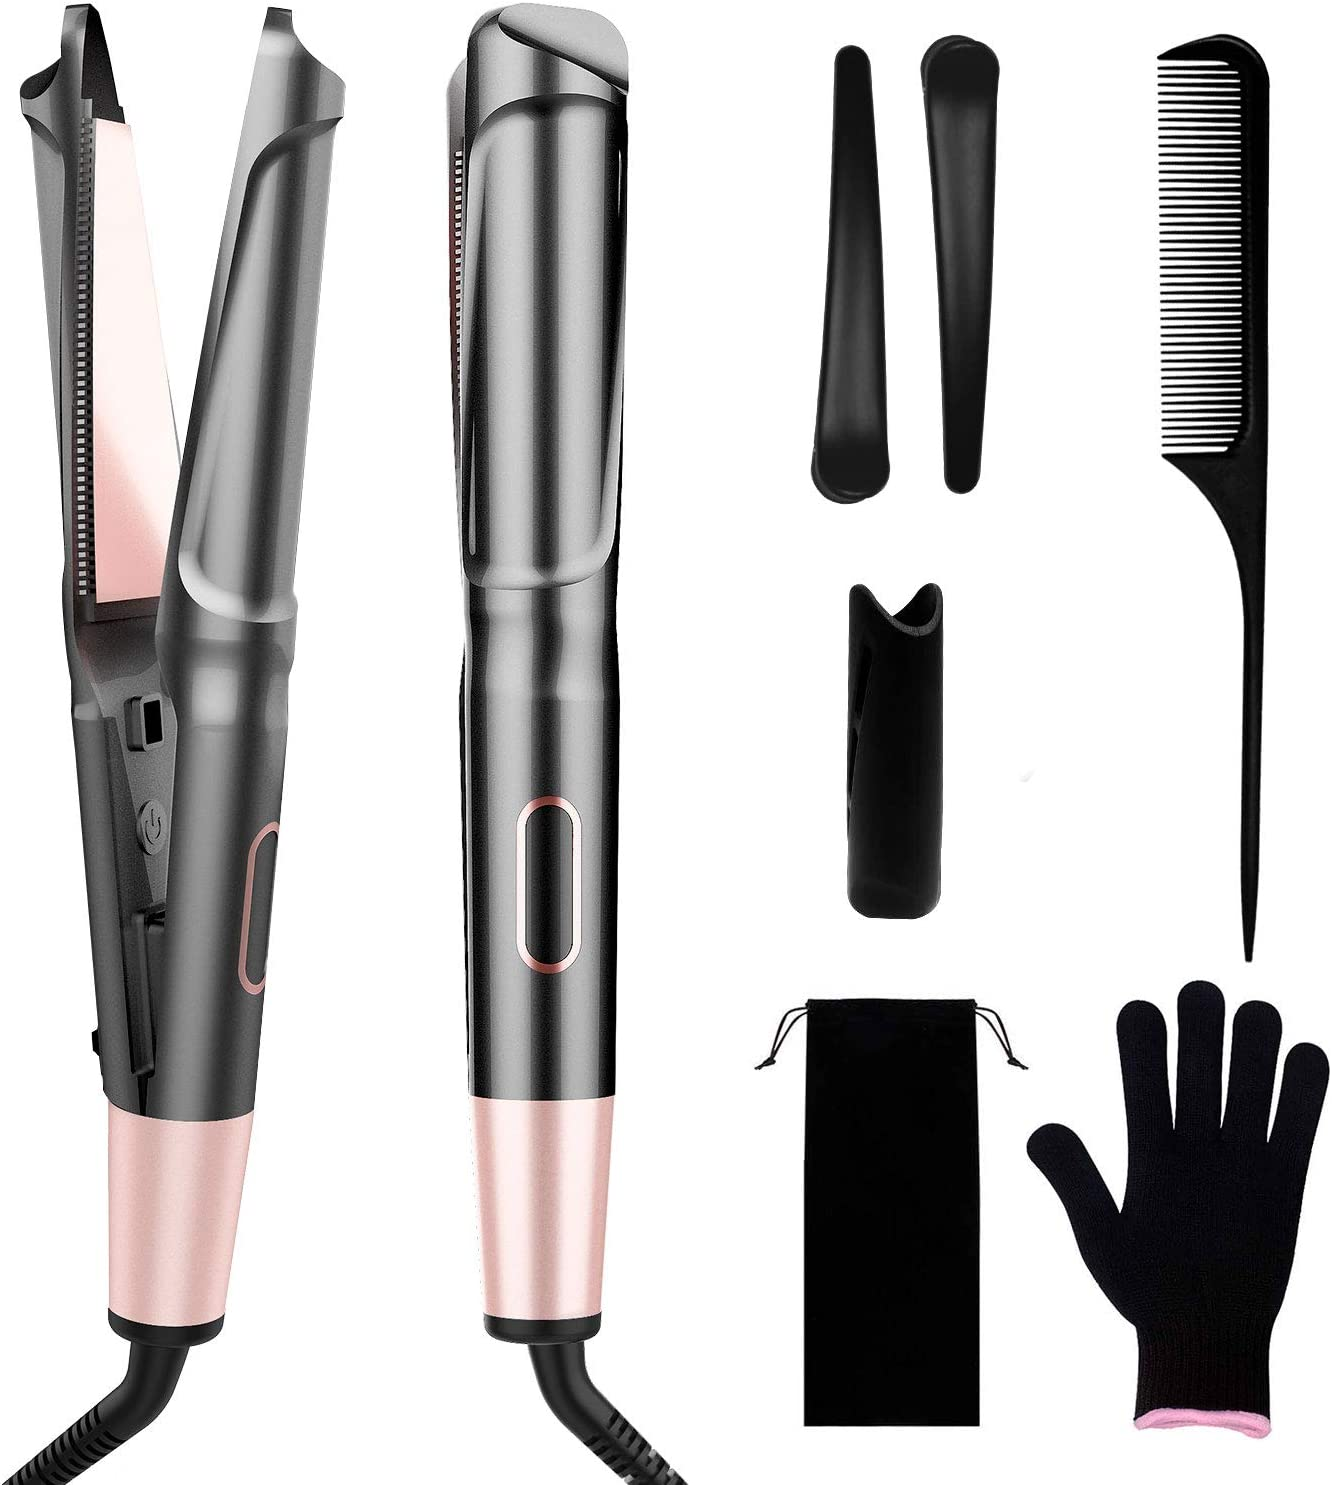 COOLKESI Ionic Hair Straightener & Curler 2 in 1, Tourmaline Ceramic Twisted Curling Straightening Flat Iron, Fast Heating Hair Styling Tools with Adjustable Temperature, LCD Display & Auto Shut-Off